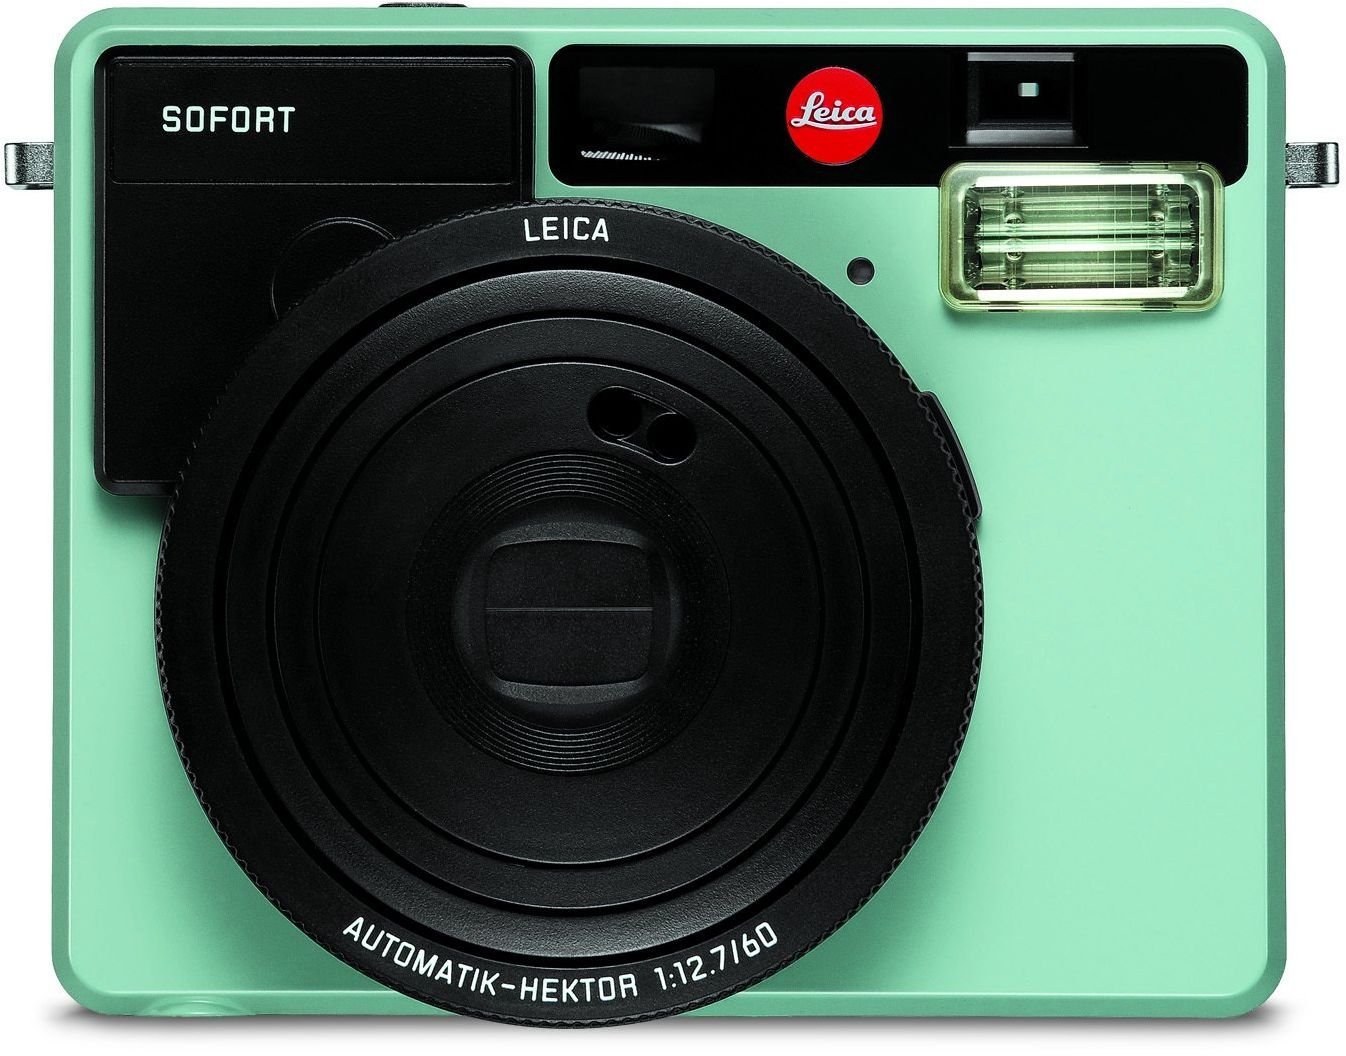 Leica 19107 Sofort Instant Film Camera, Mint